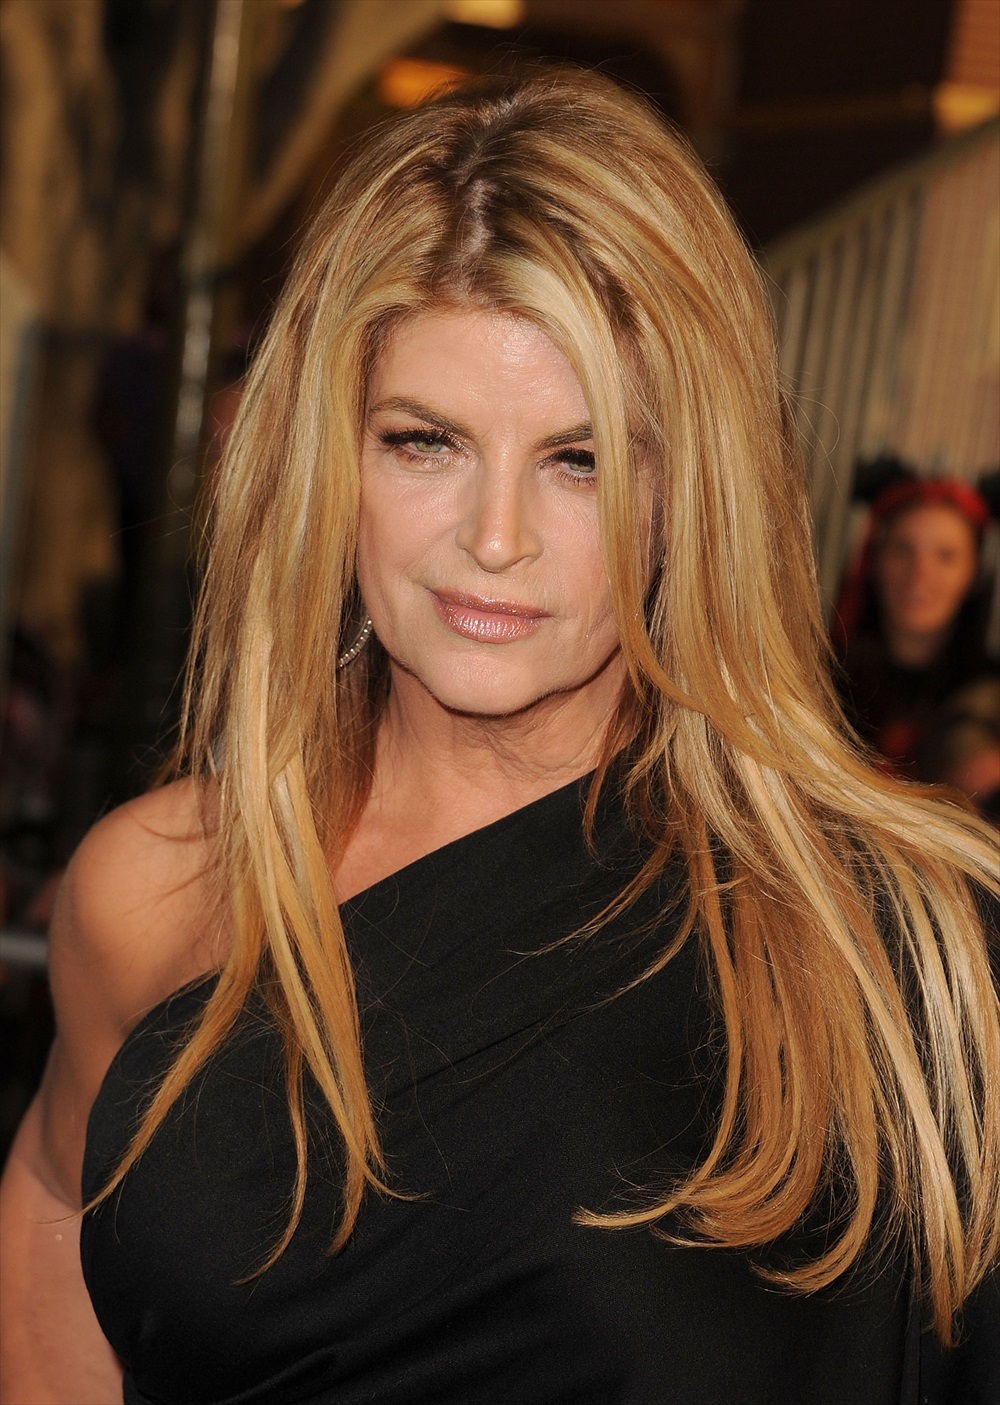 Kirstie Alley Weight Loss: 'Hot in Cleveland' Shows Off Much Slimmer ...